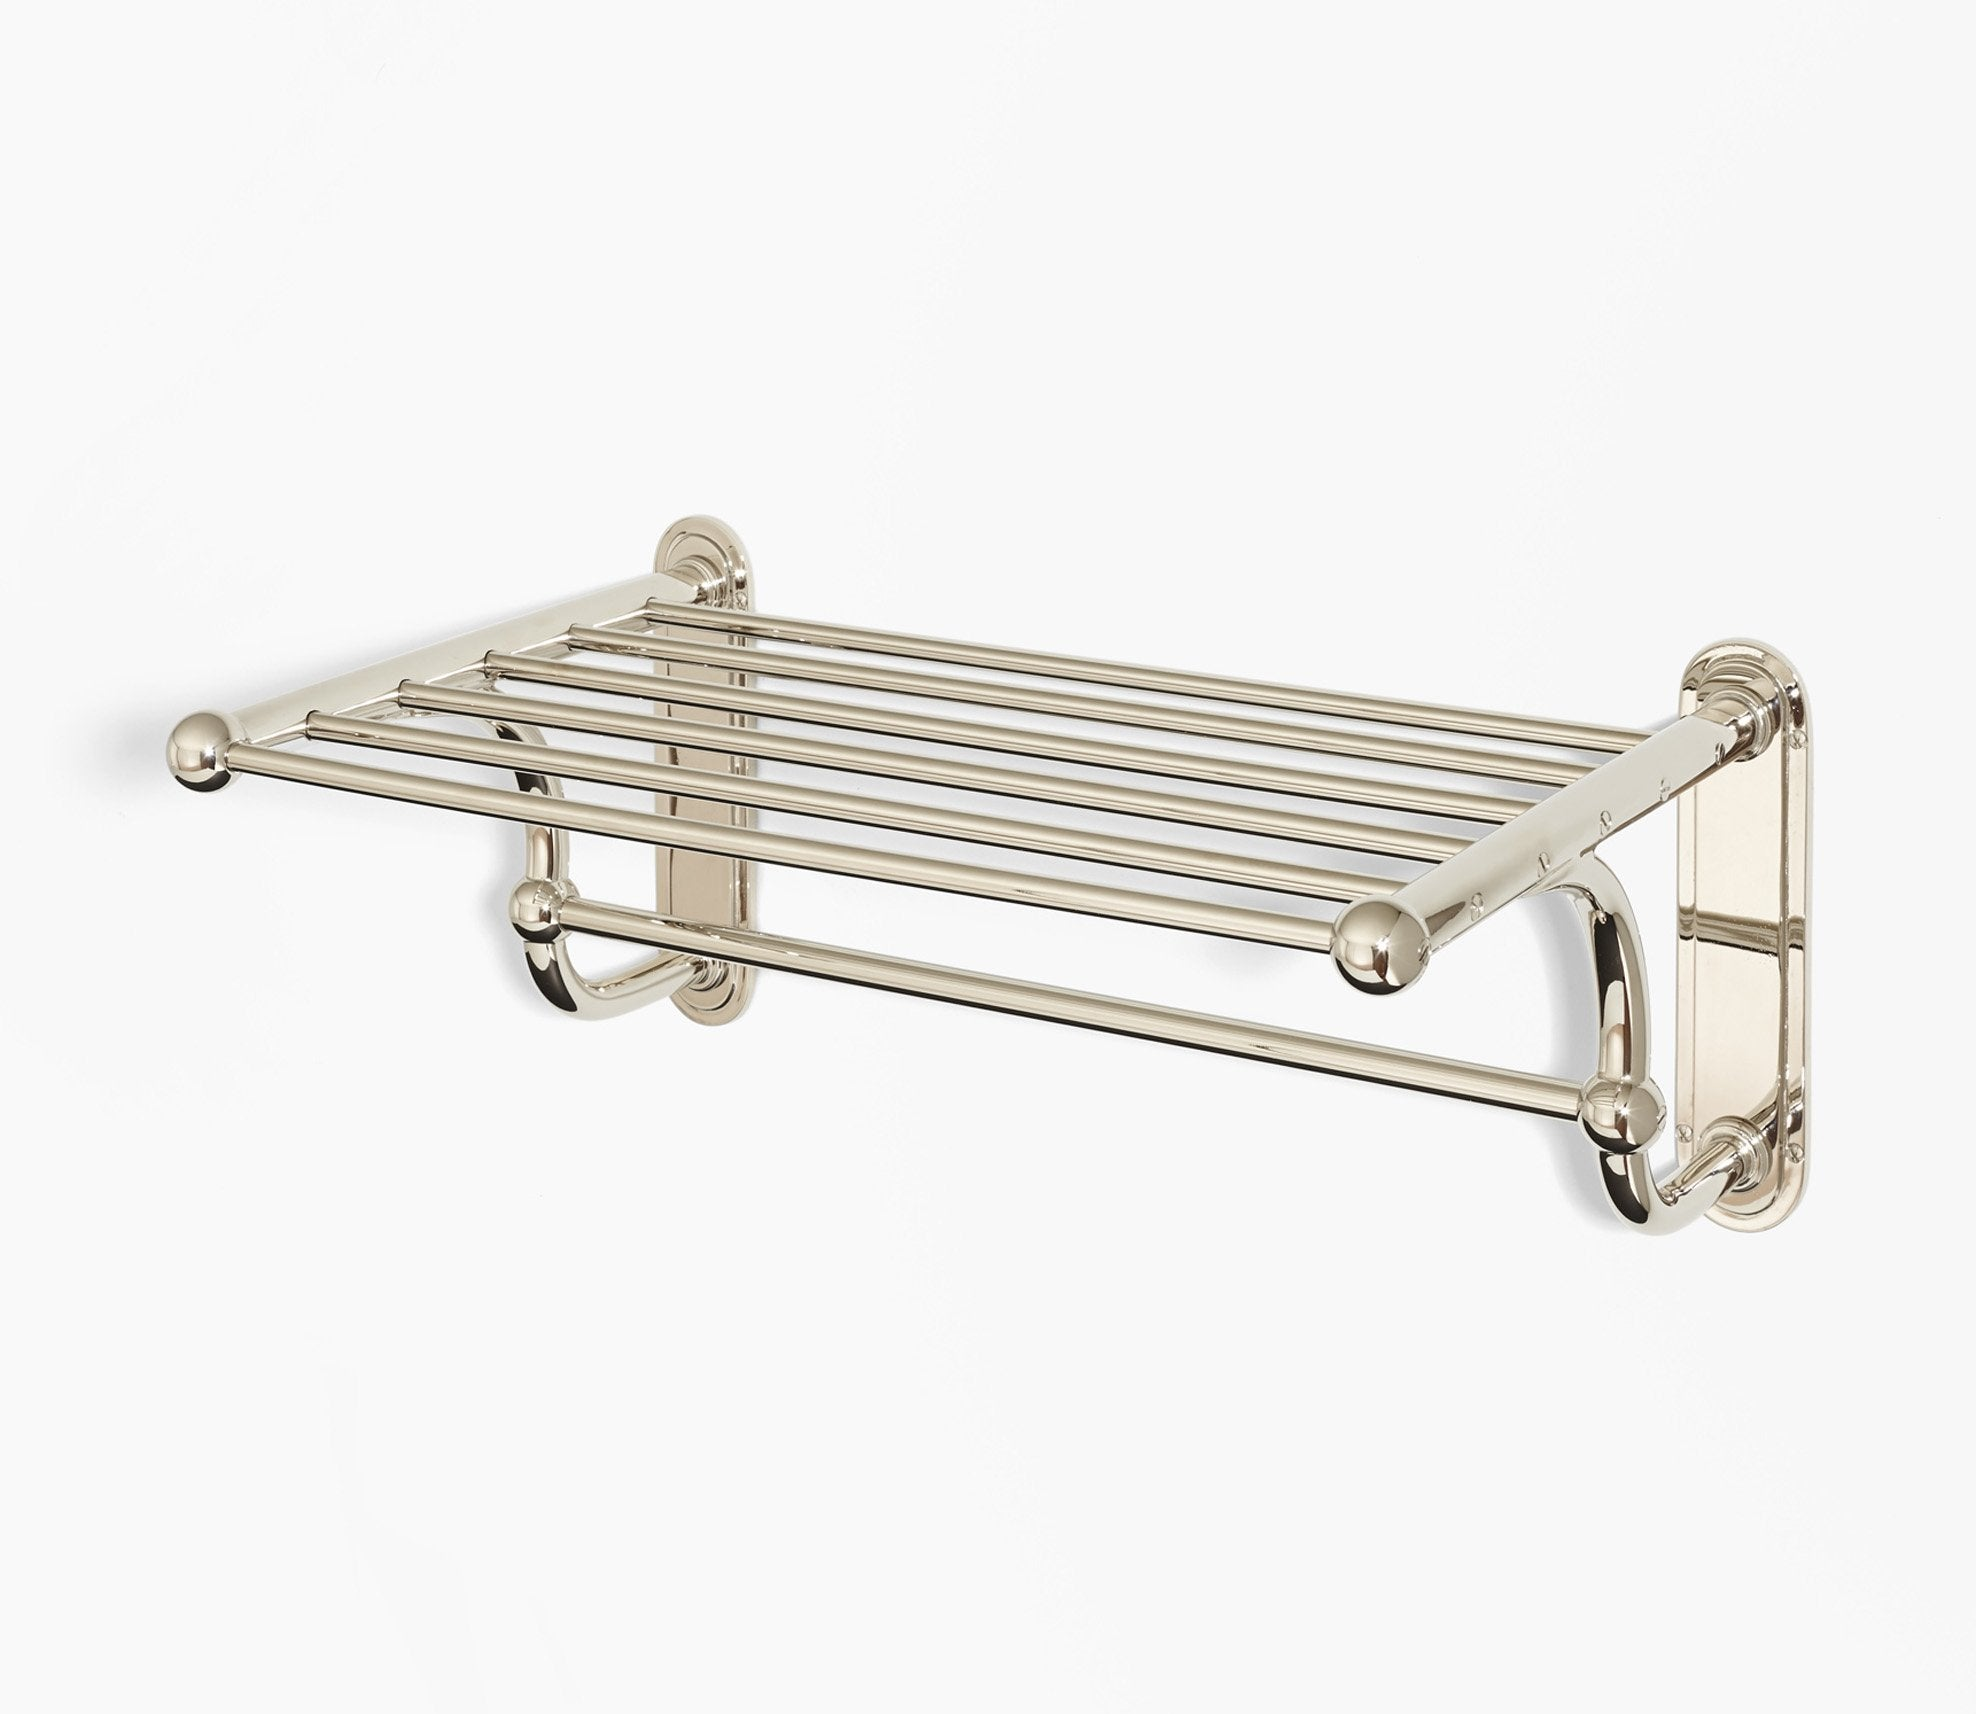 Moderna Wall Rack Product Image 1